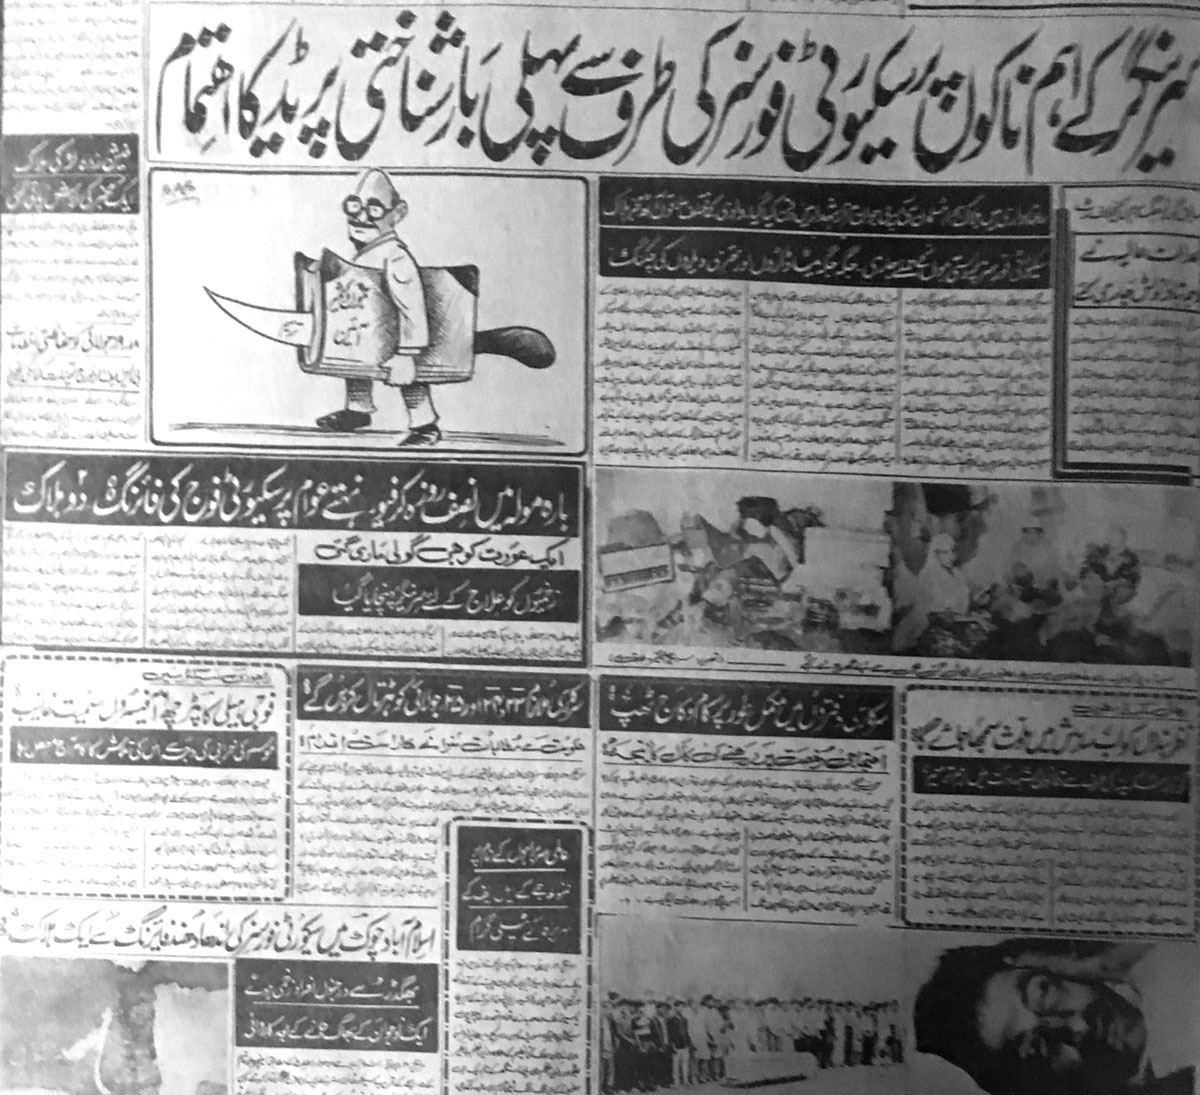 An early 1990's newspaper clip talking about ground level situation in Kashmir.